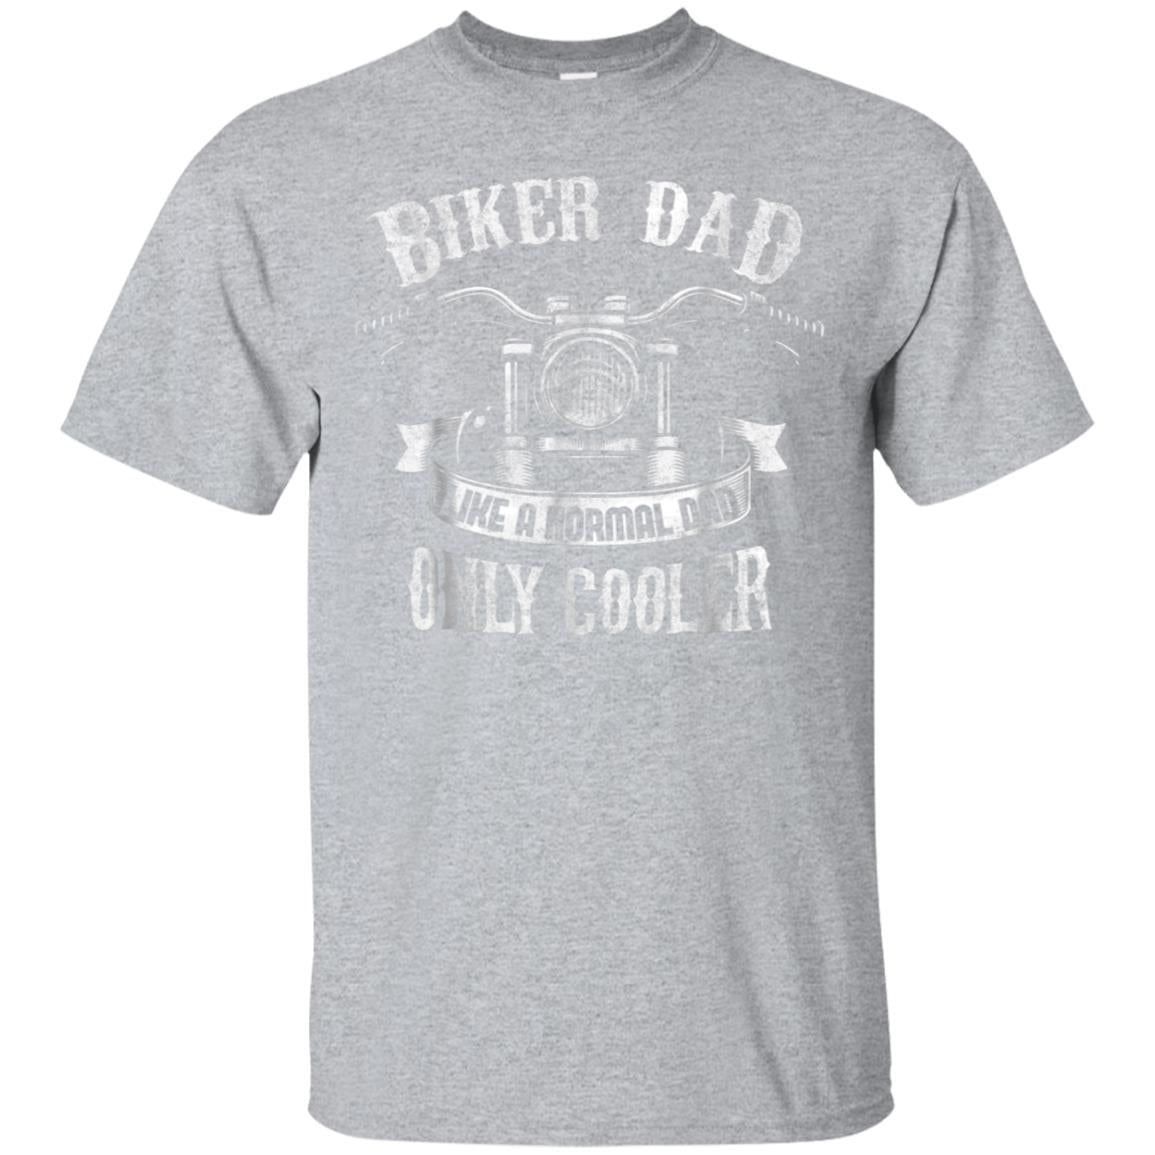 Biker Dad T-Shirt Motorbike Gift for Motorcycle Fathers 99promocode